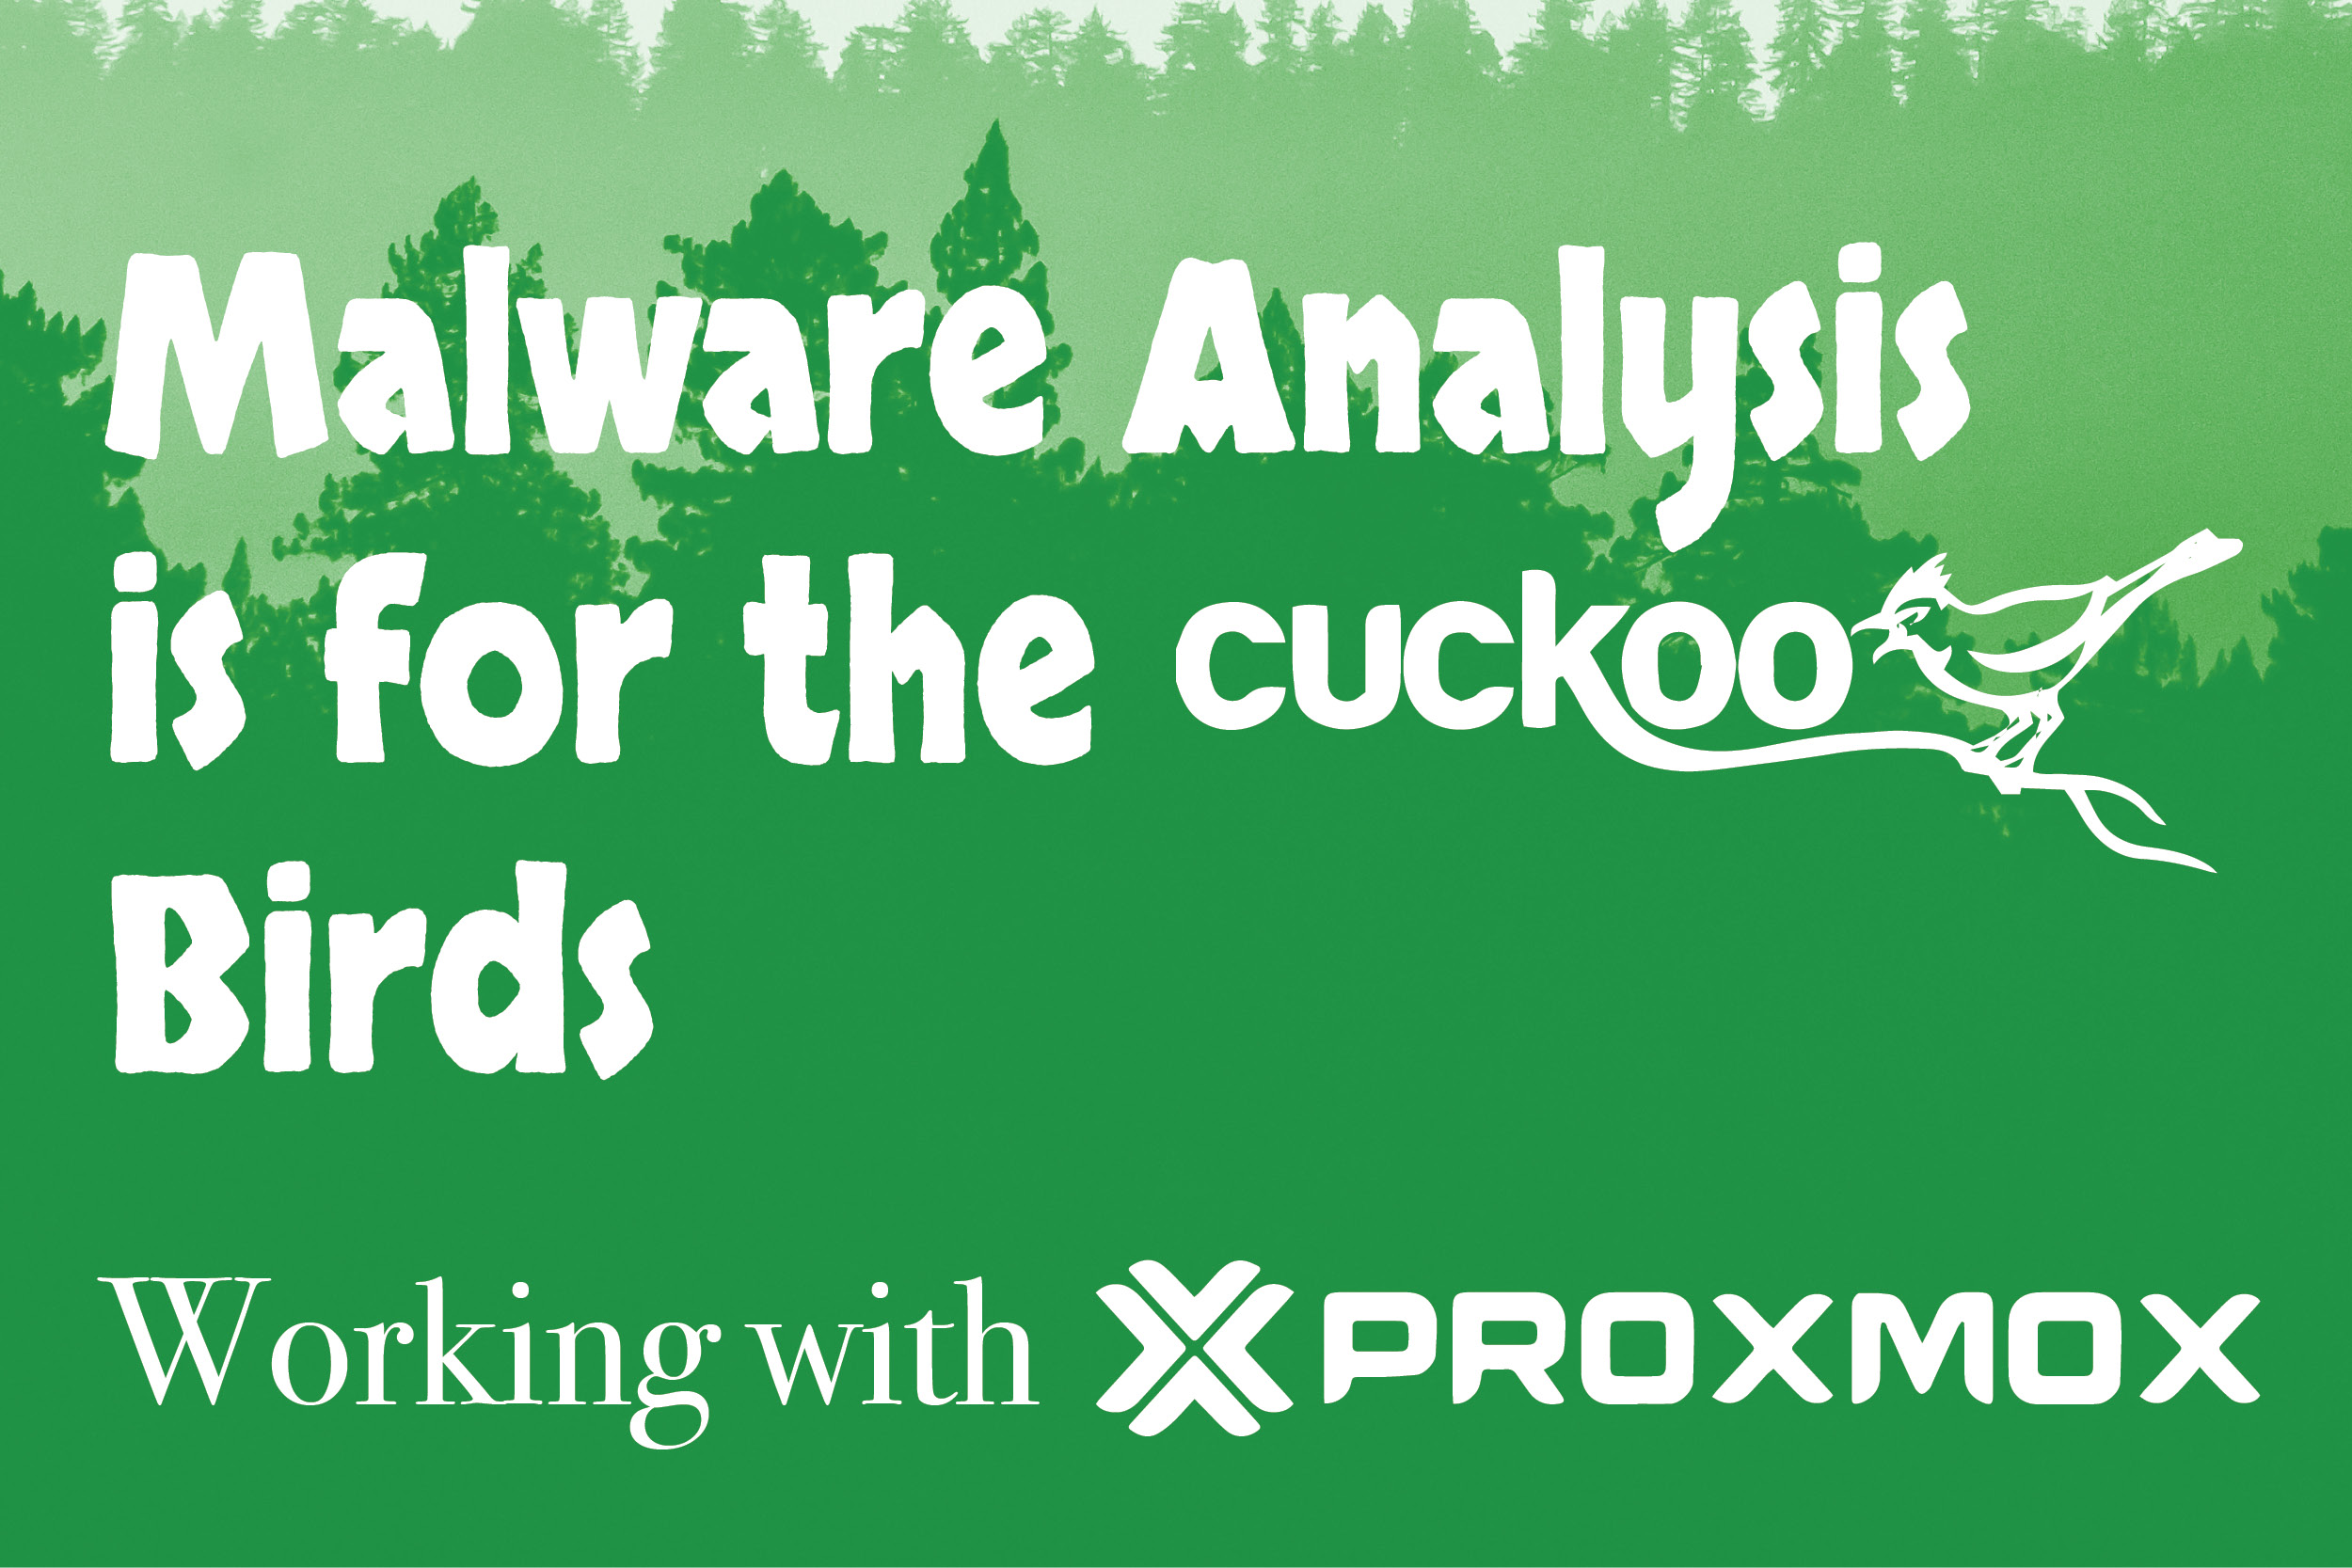 Malware Analysis is for the (Cuckoo) Birds - Working with Proxmox